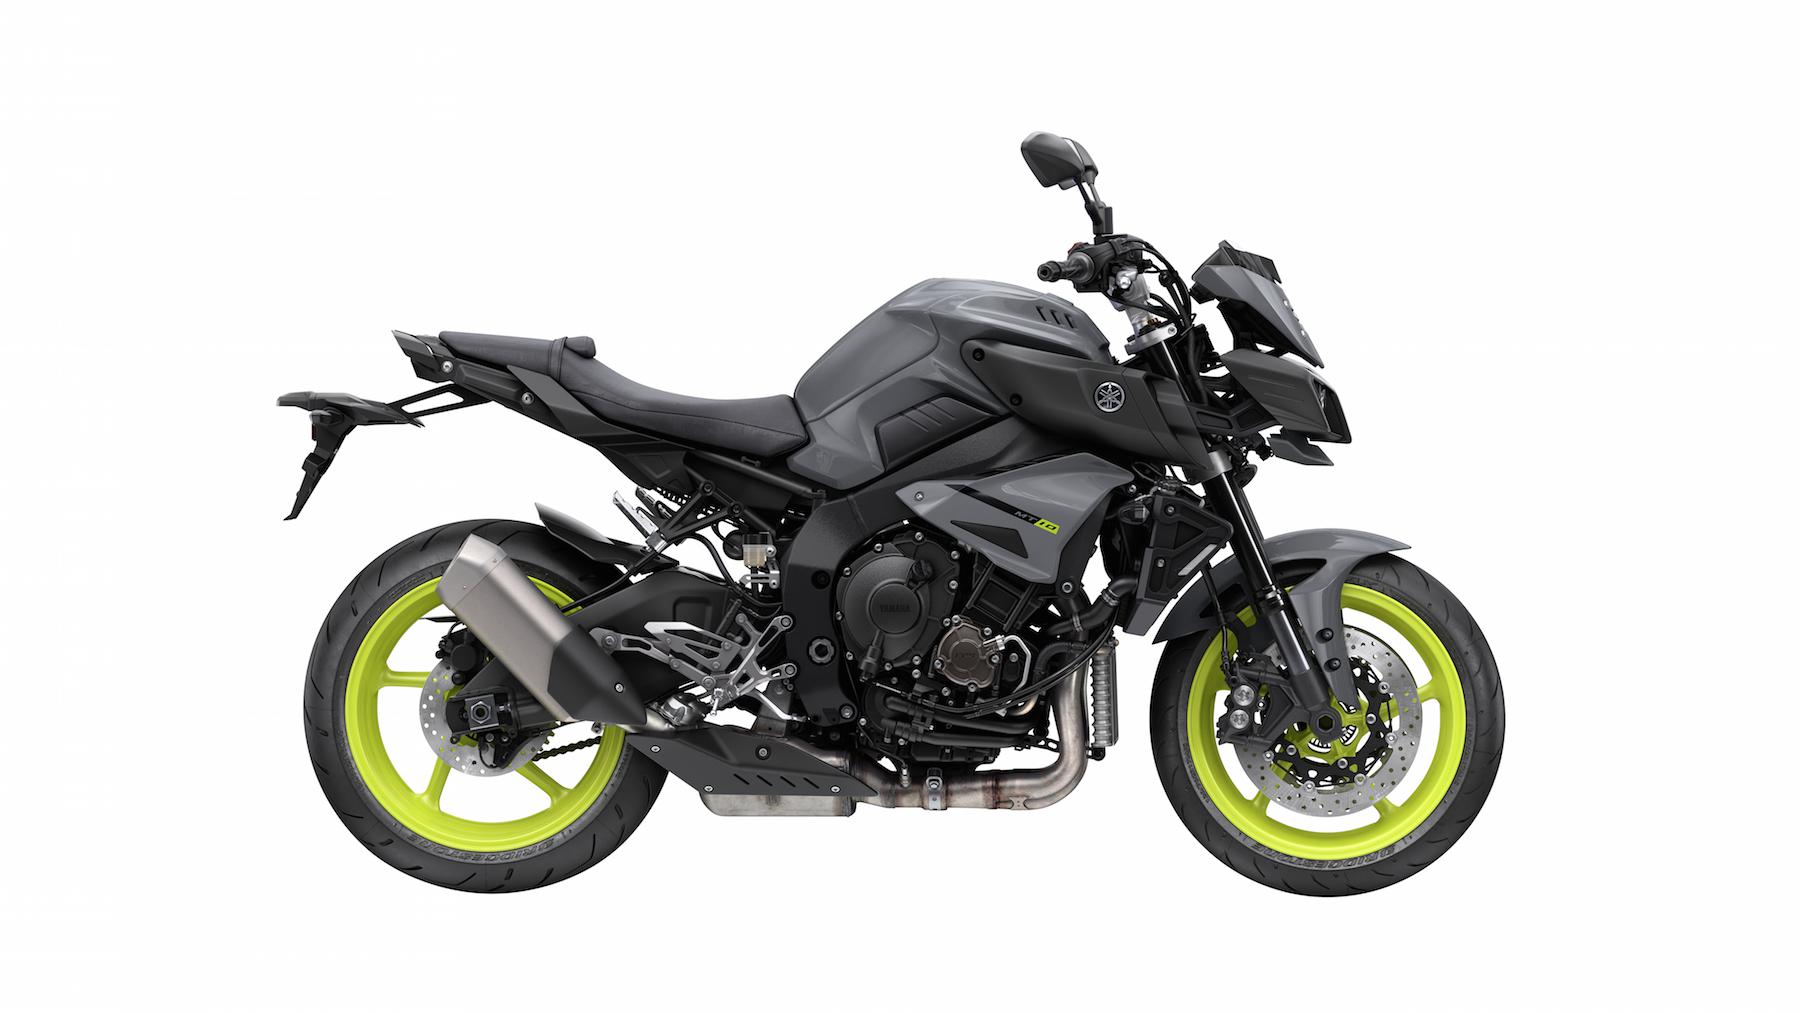 yamaha mt 10 motorrad fotos motorrad bilder. Black Bedroom Furniture Sets. Home Design Ideas